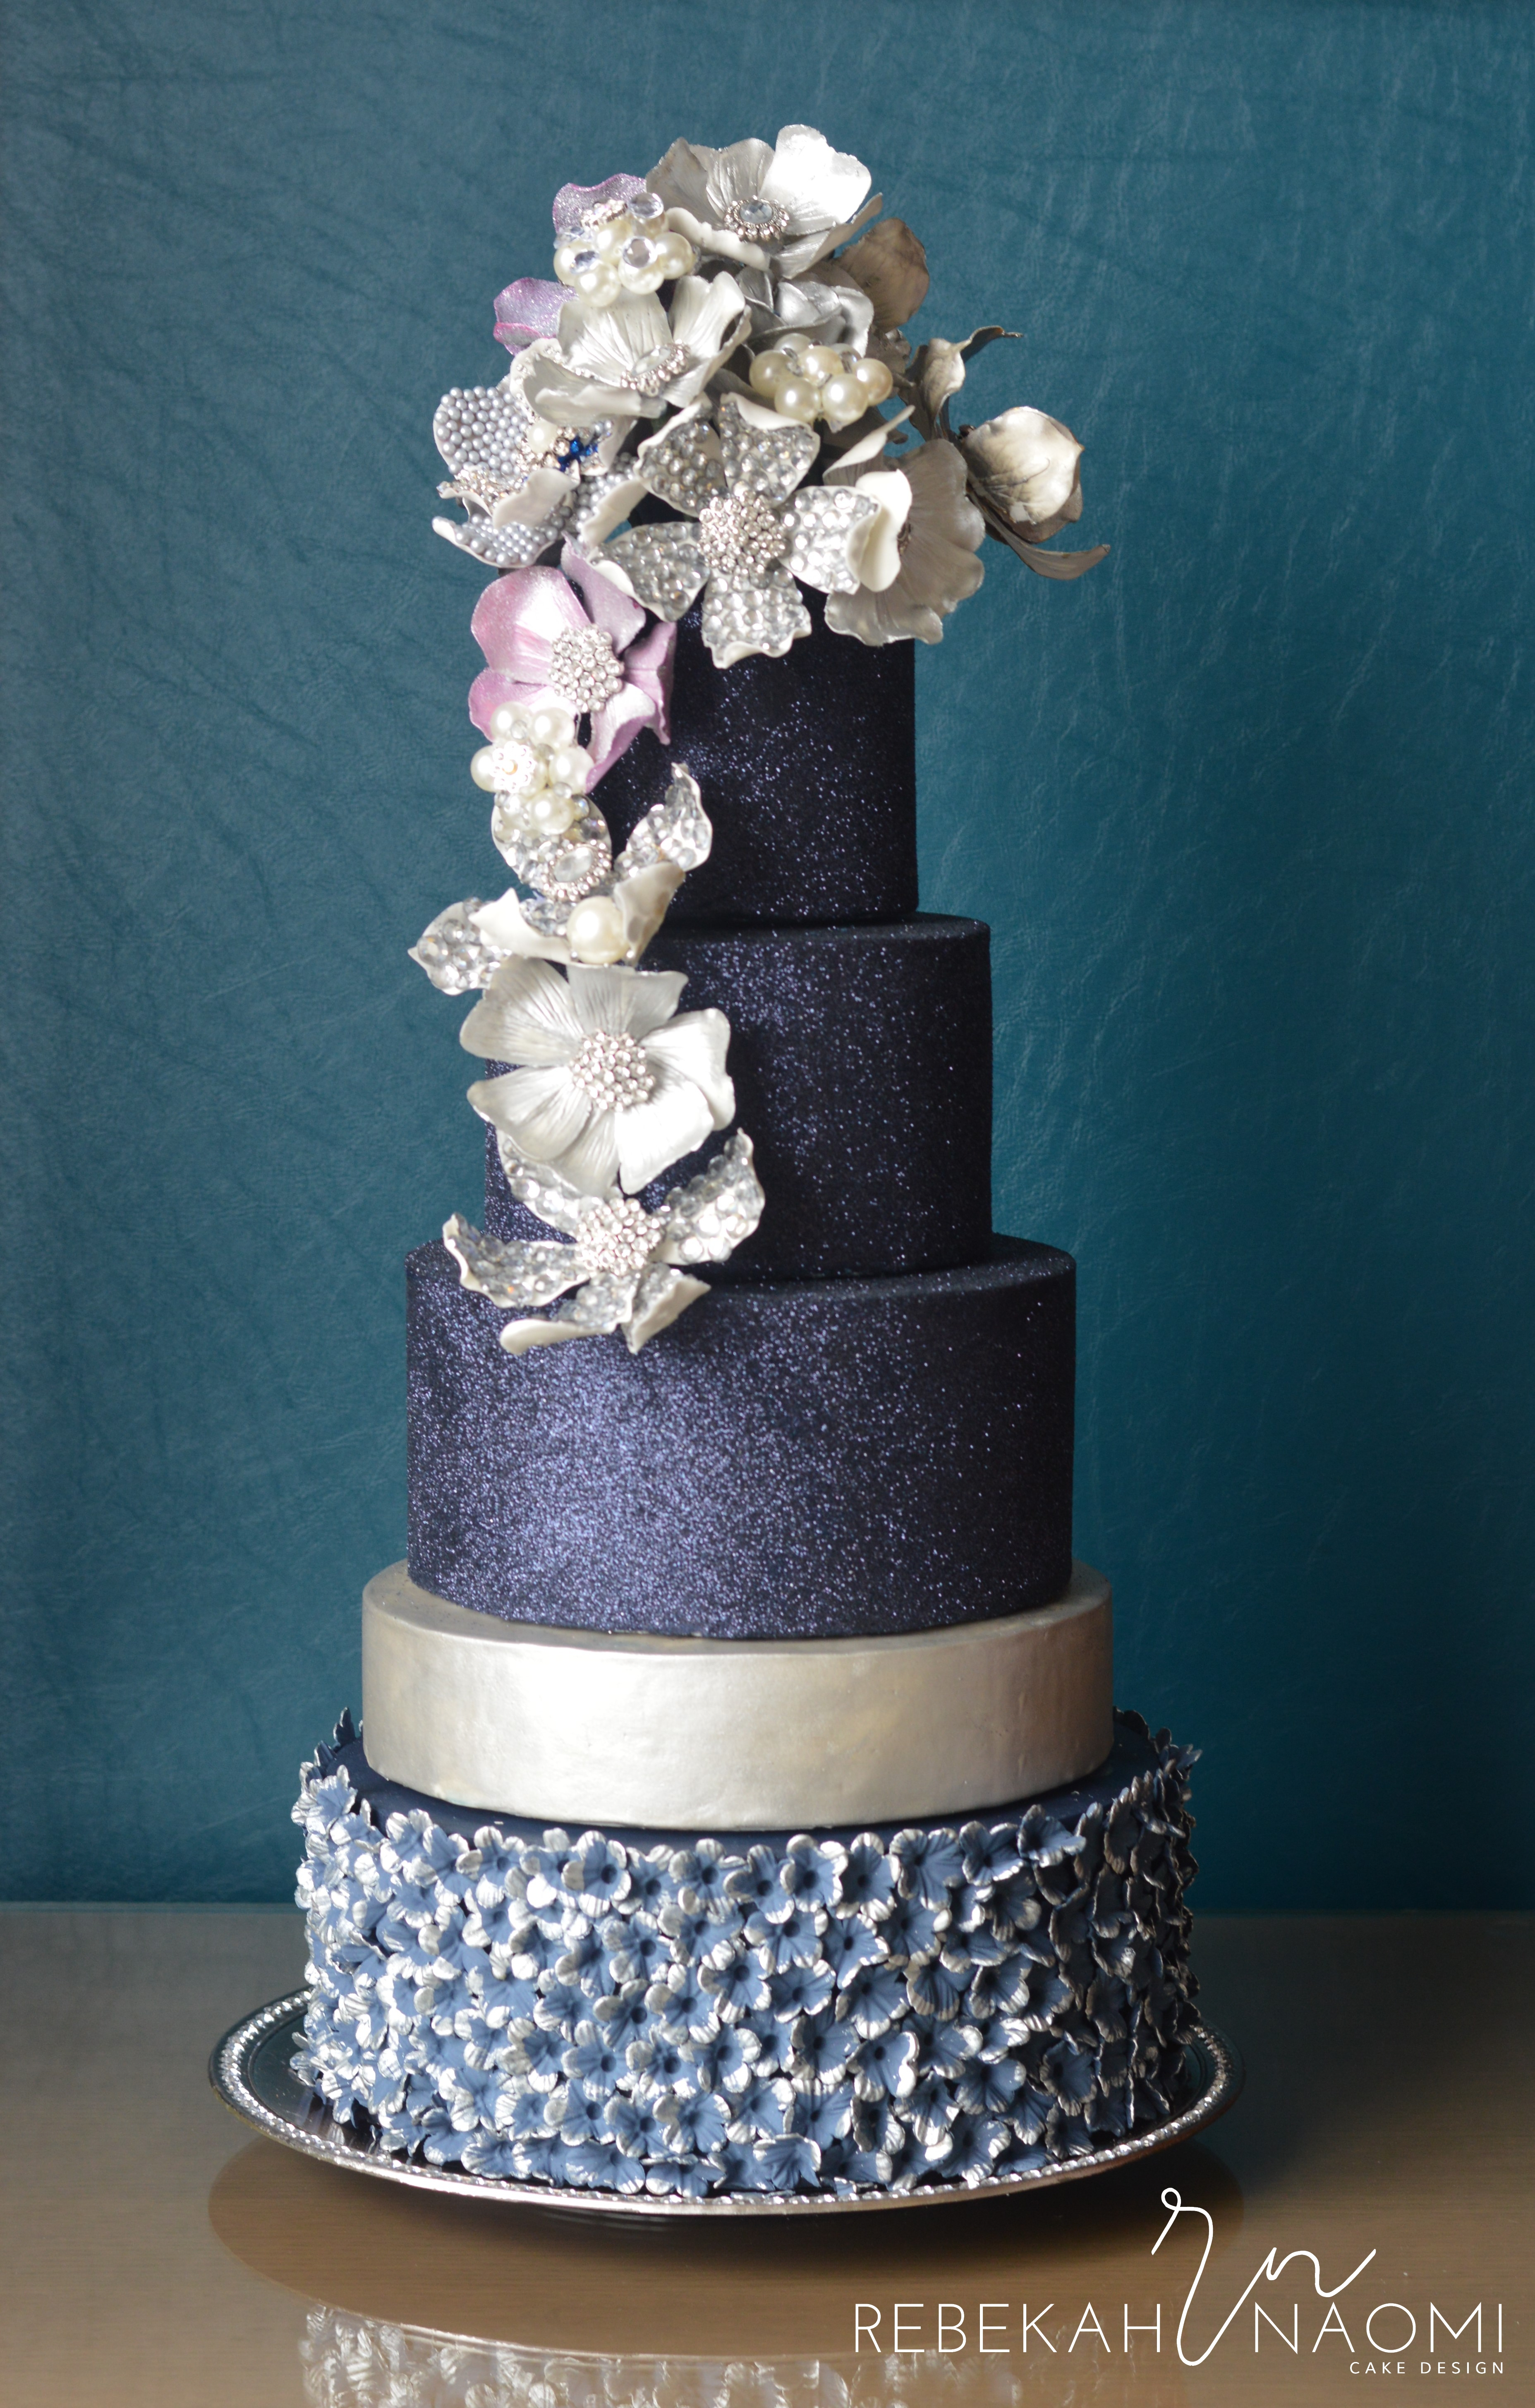 Bejeweled Cake For American Cake Decorating This cake was a commission for American Cake Decorating magazine for their January/February Trends issue. The cake features jeweled flowers...